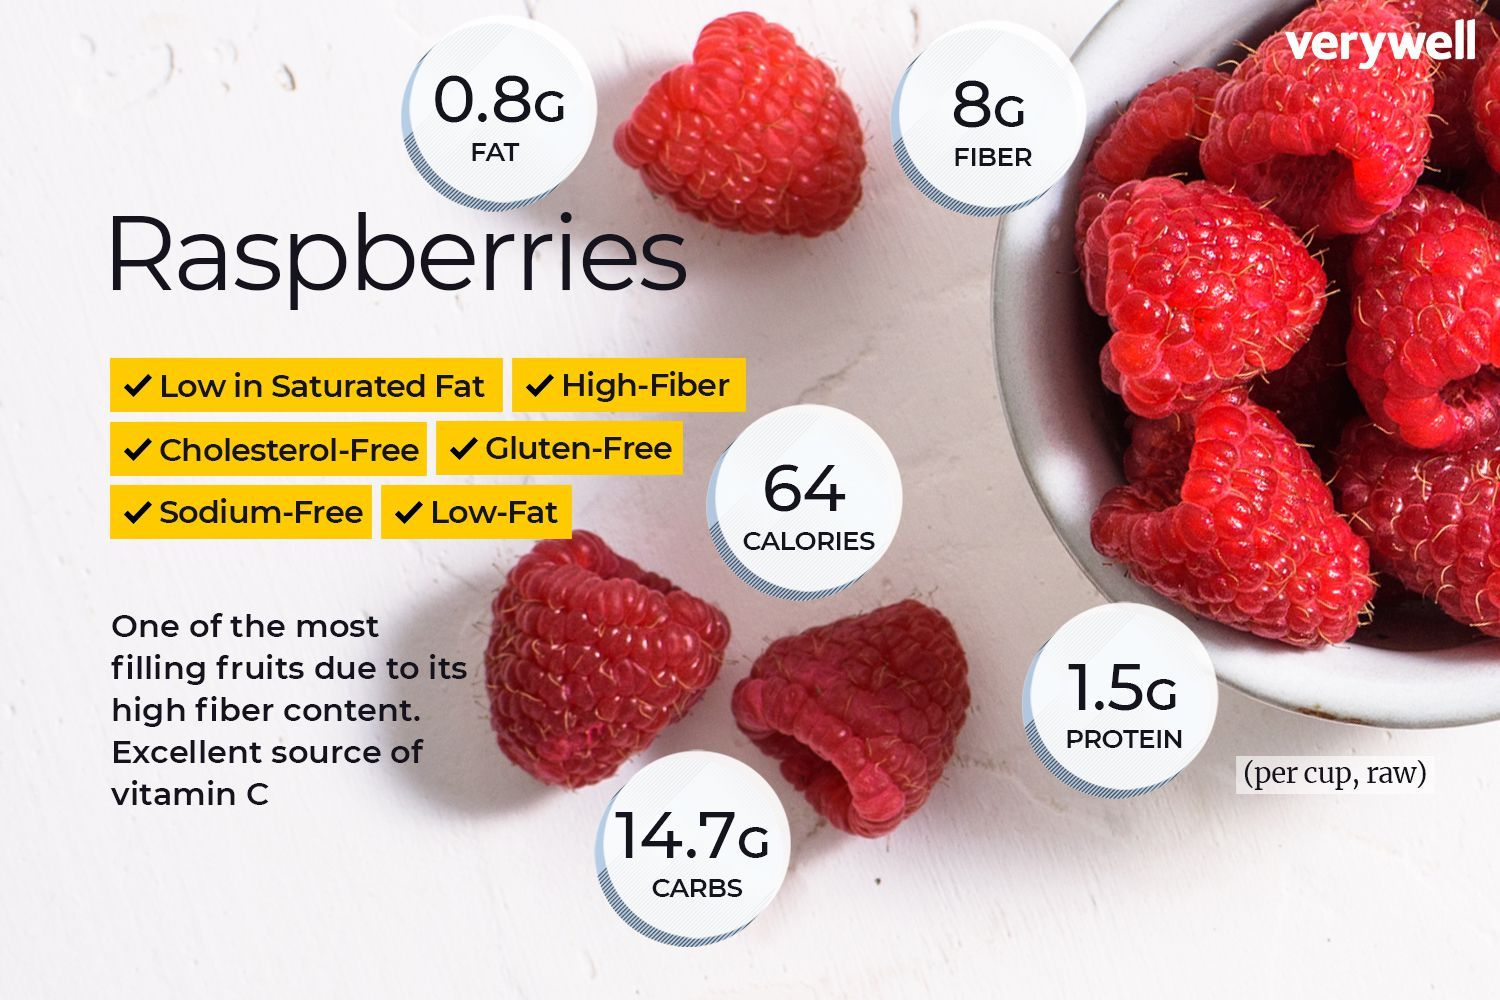 There Are Very Few Calories In Raspberries And They Are A Low Carb High Fiber Fruit That Is Good F Raspberry Nutrition High Fiber Fruits Fruit Nutrition Facts